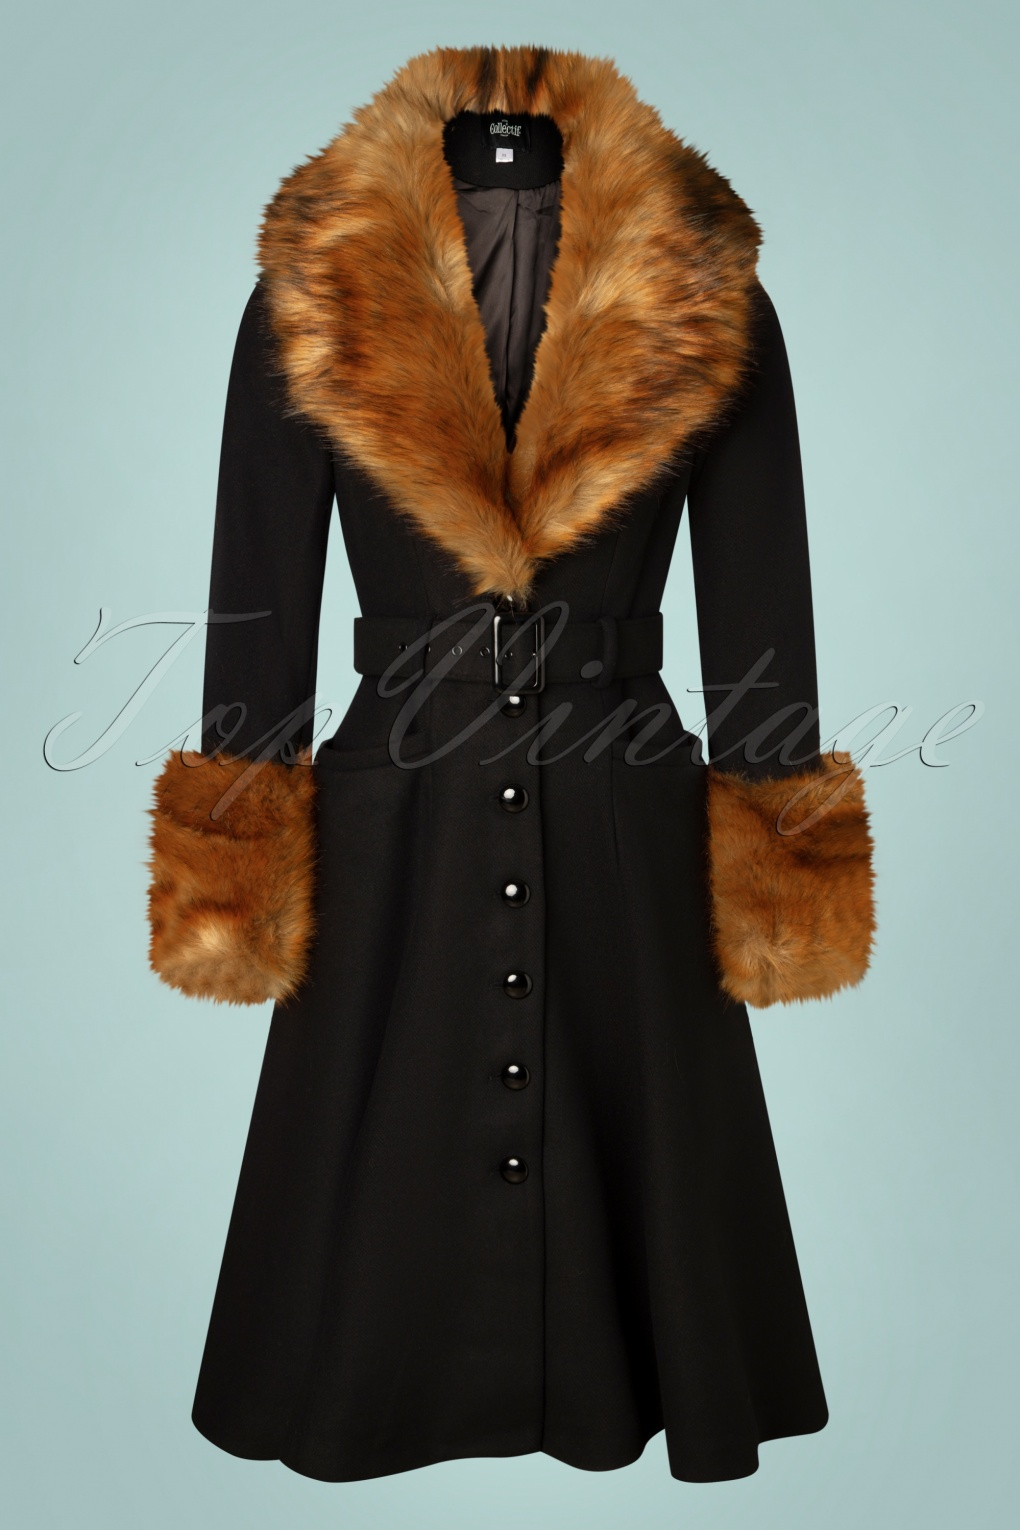 1930s Style Clothing and Fashion 40s Jackie Princess Coat in Black £186.88 AT vintagedancer.com